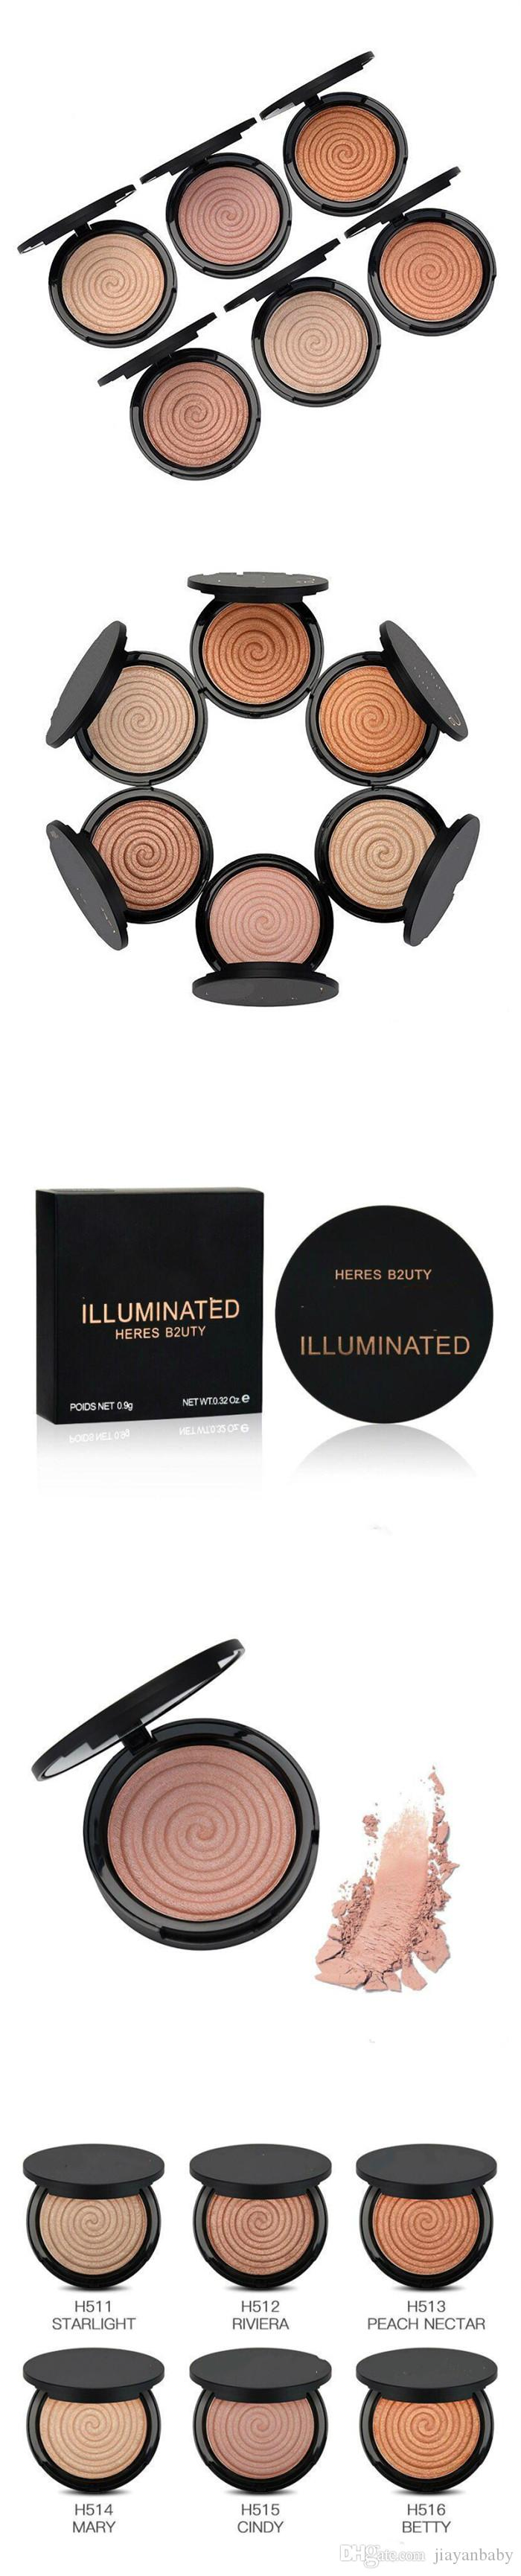 Christmas hot sale New brand! Makeup HERES B2UTY naked Face Bronzers Highlighters ILUMINATED 0.9G DHL Free shipping best gift